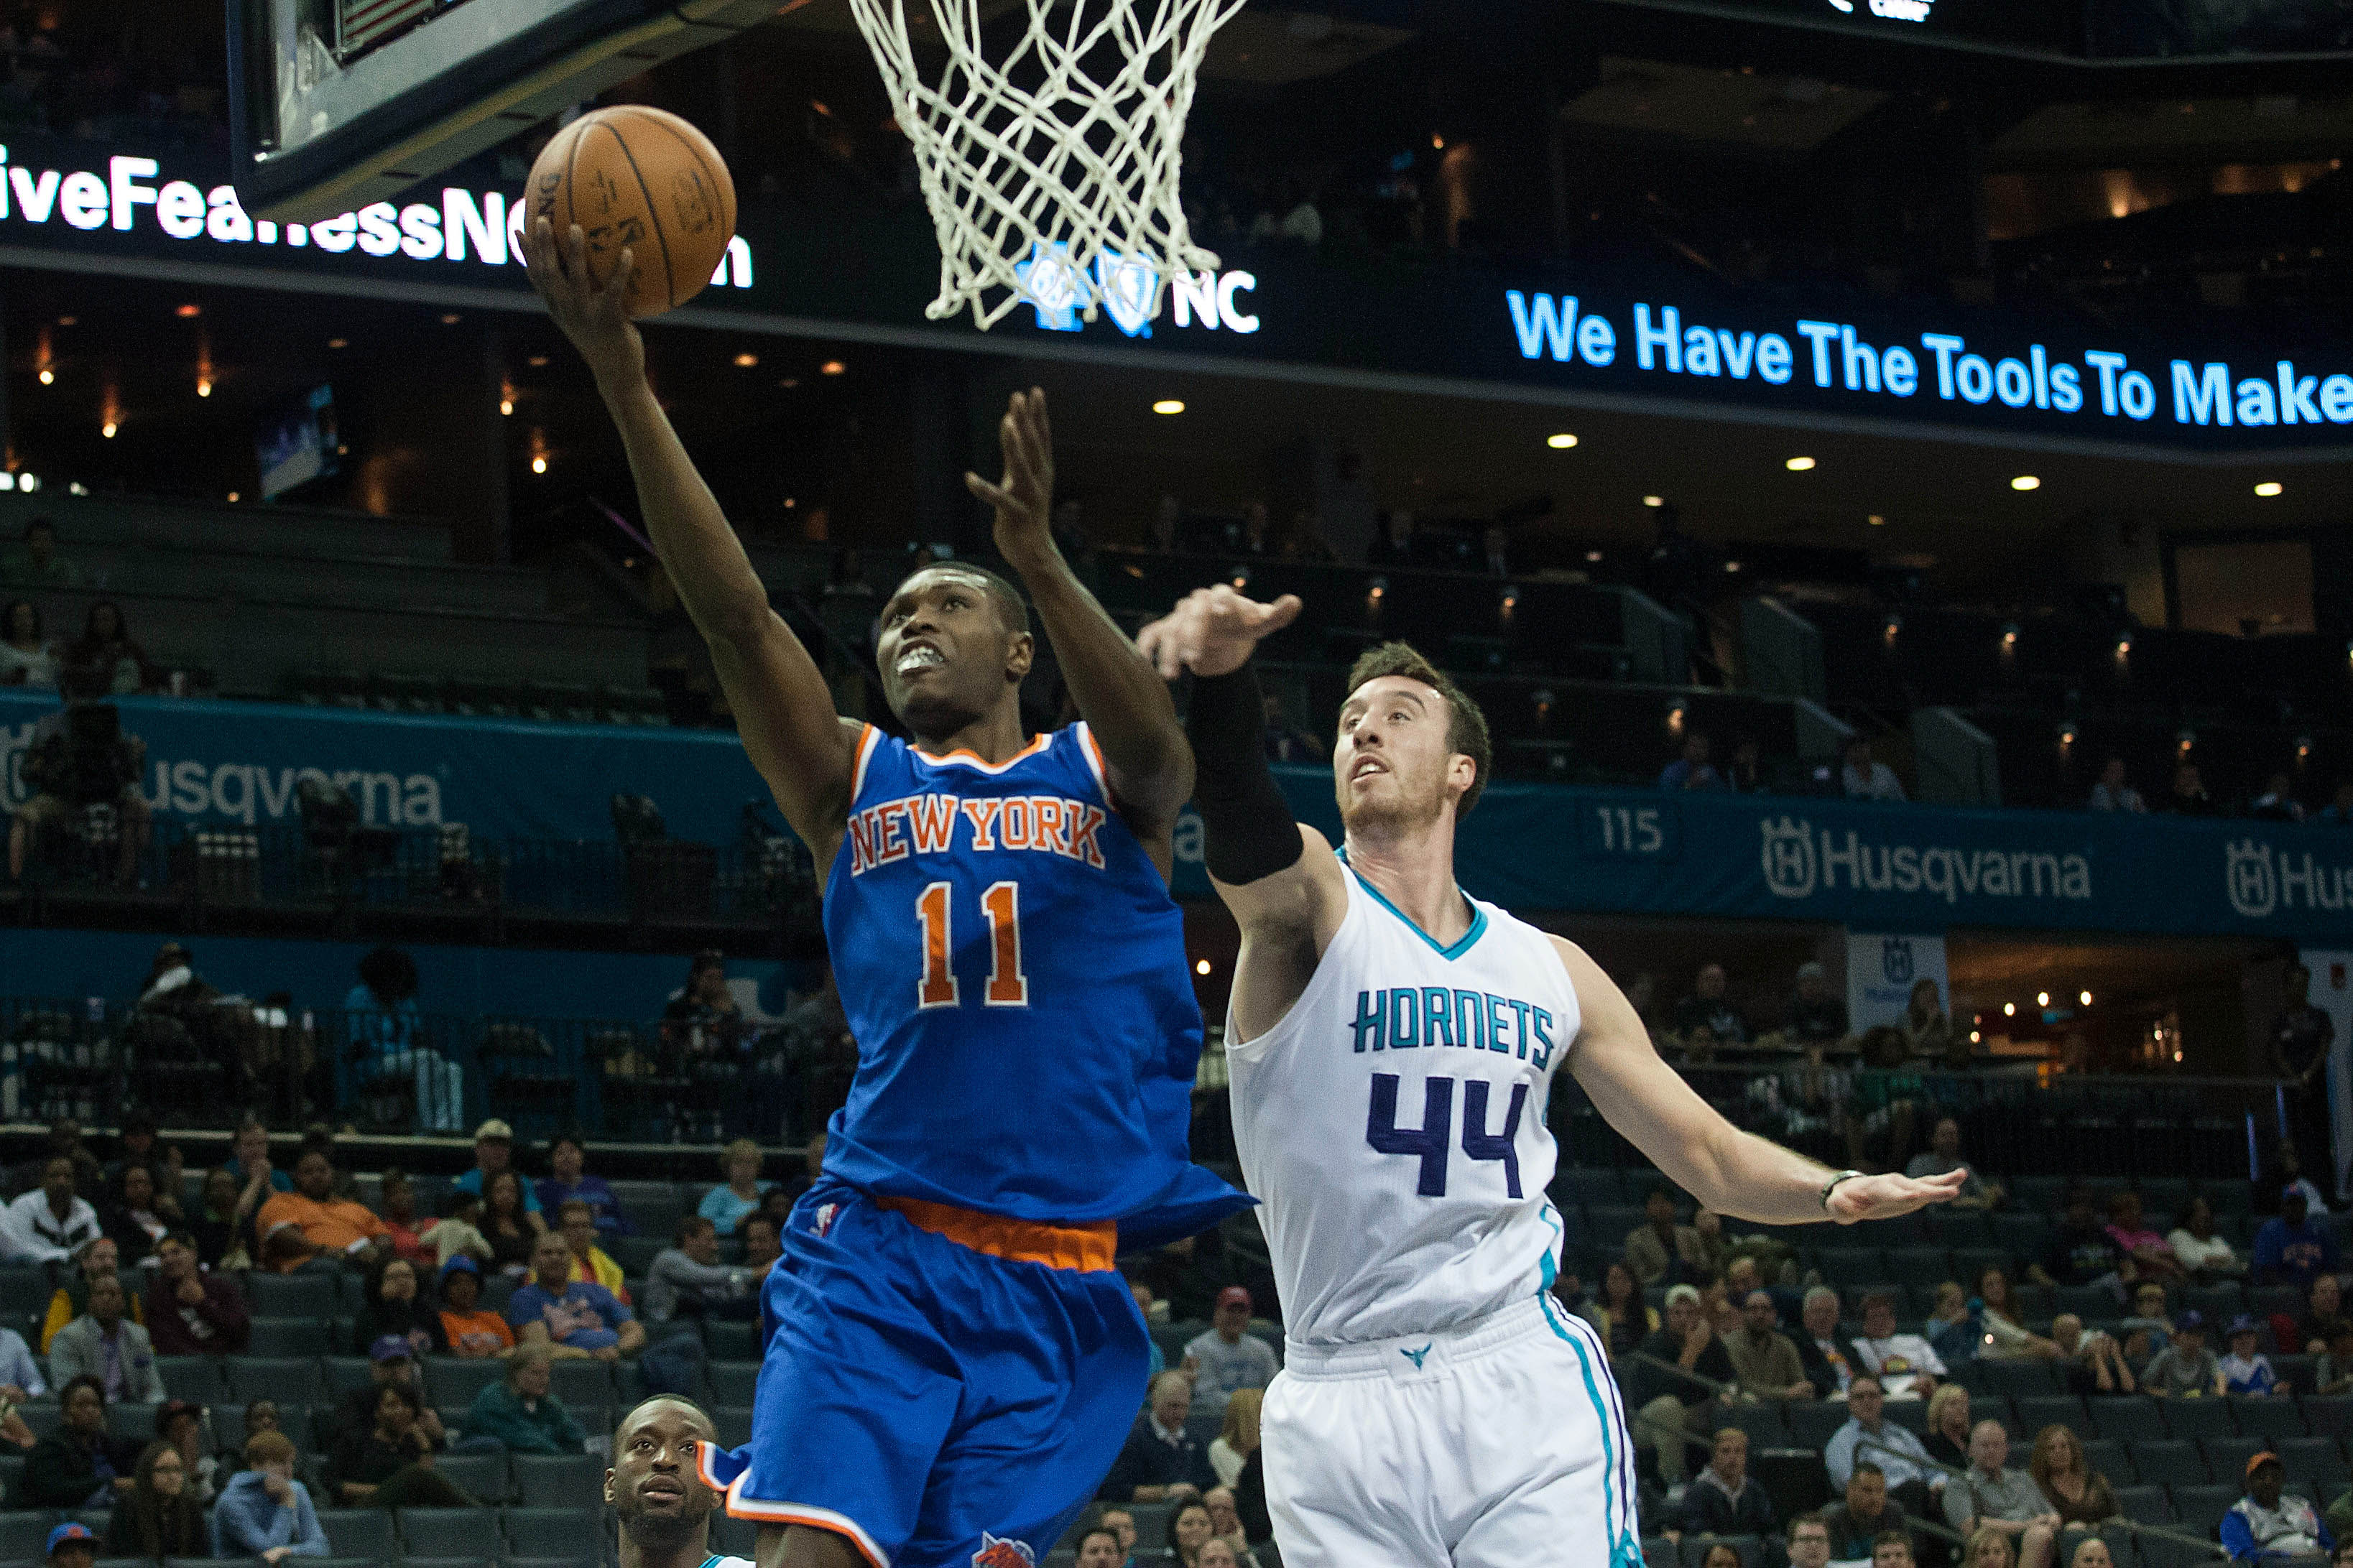 Knicks forward Cleanthony Early shot in knee early Wednesday morning